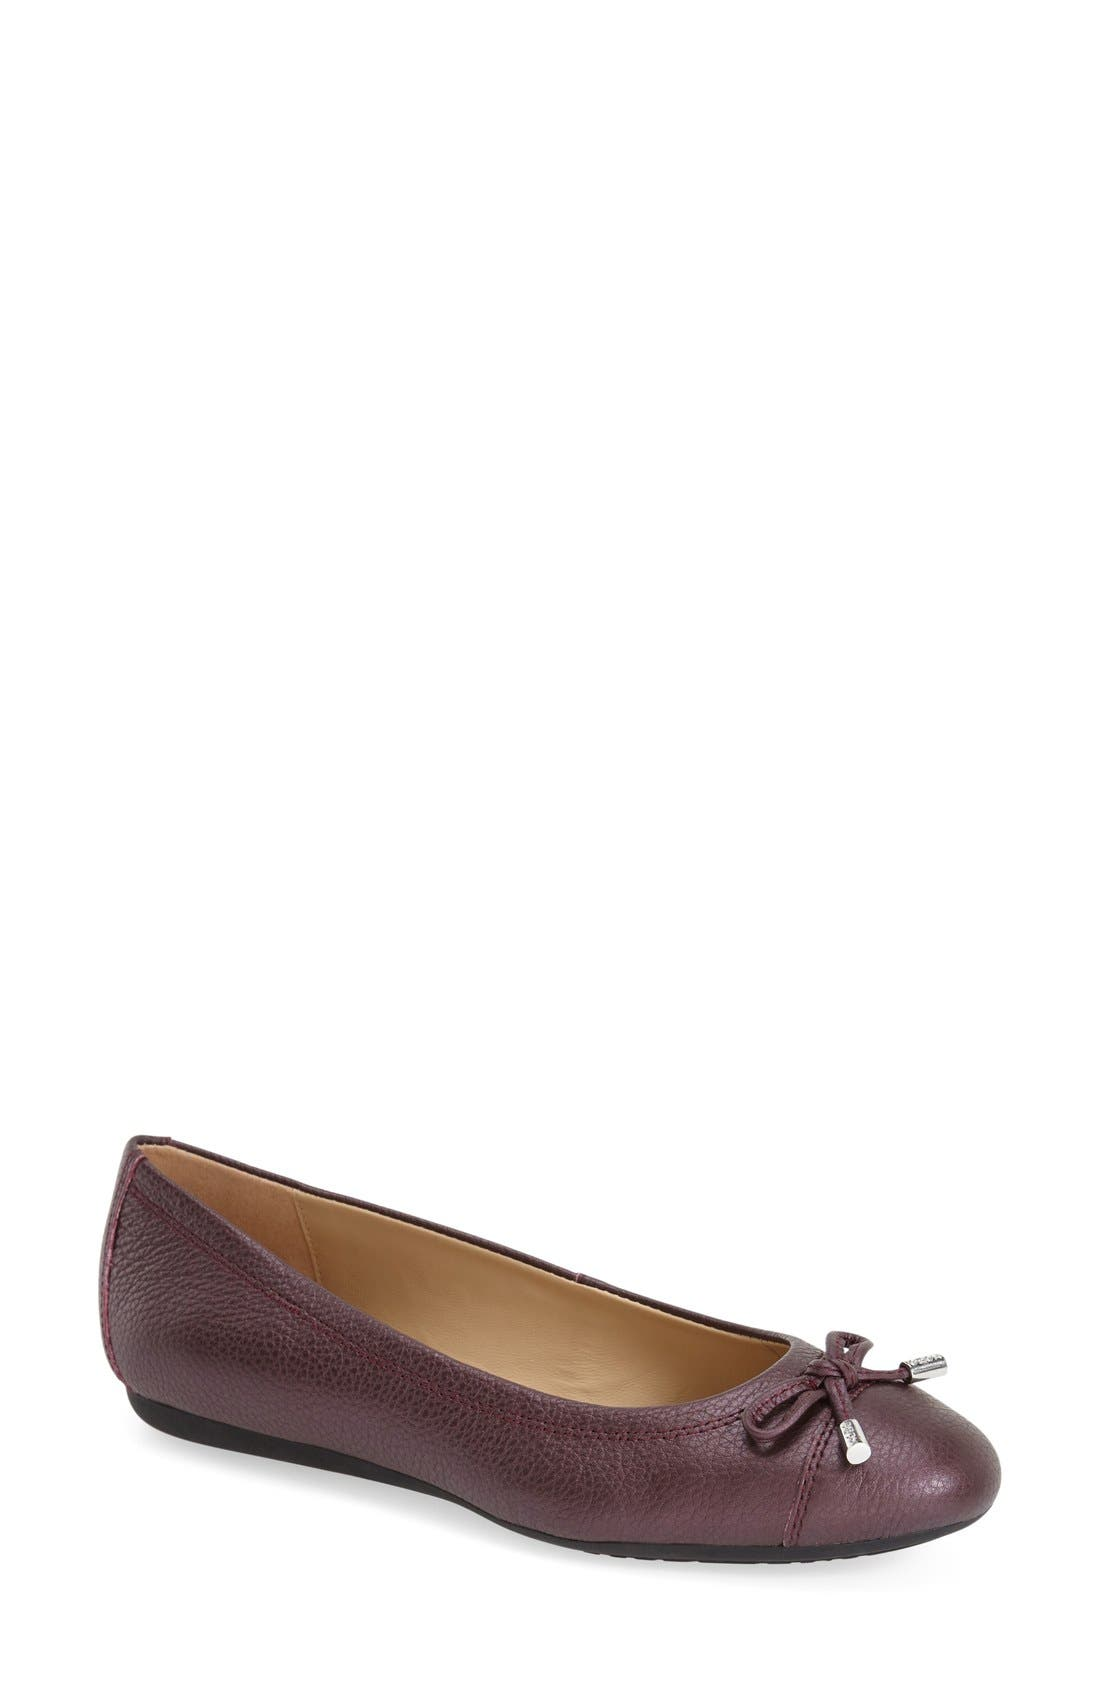 'Lola 16' Cap Toe Ballet Flat,                             Main thumbnail 4, color,